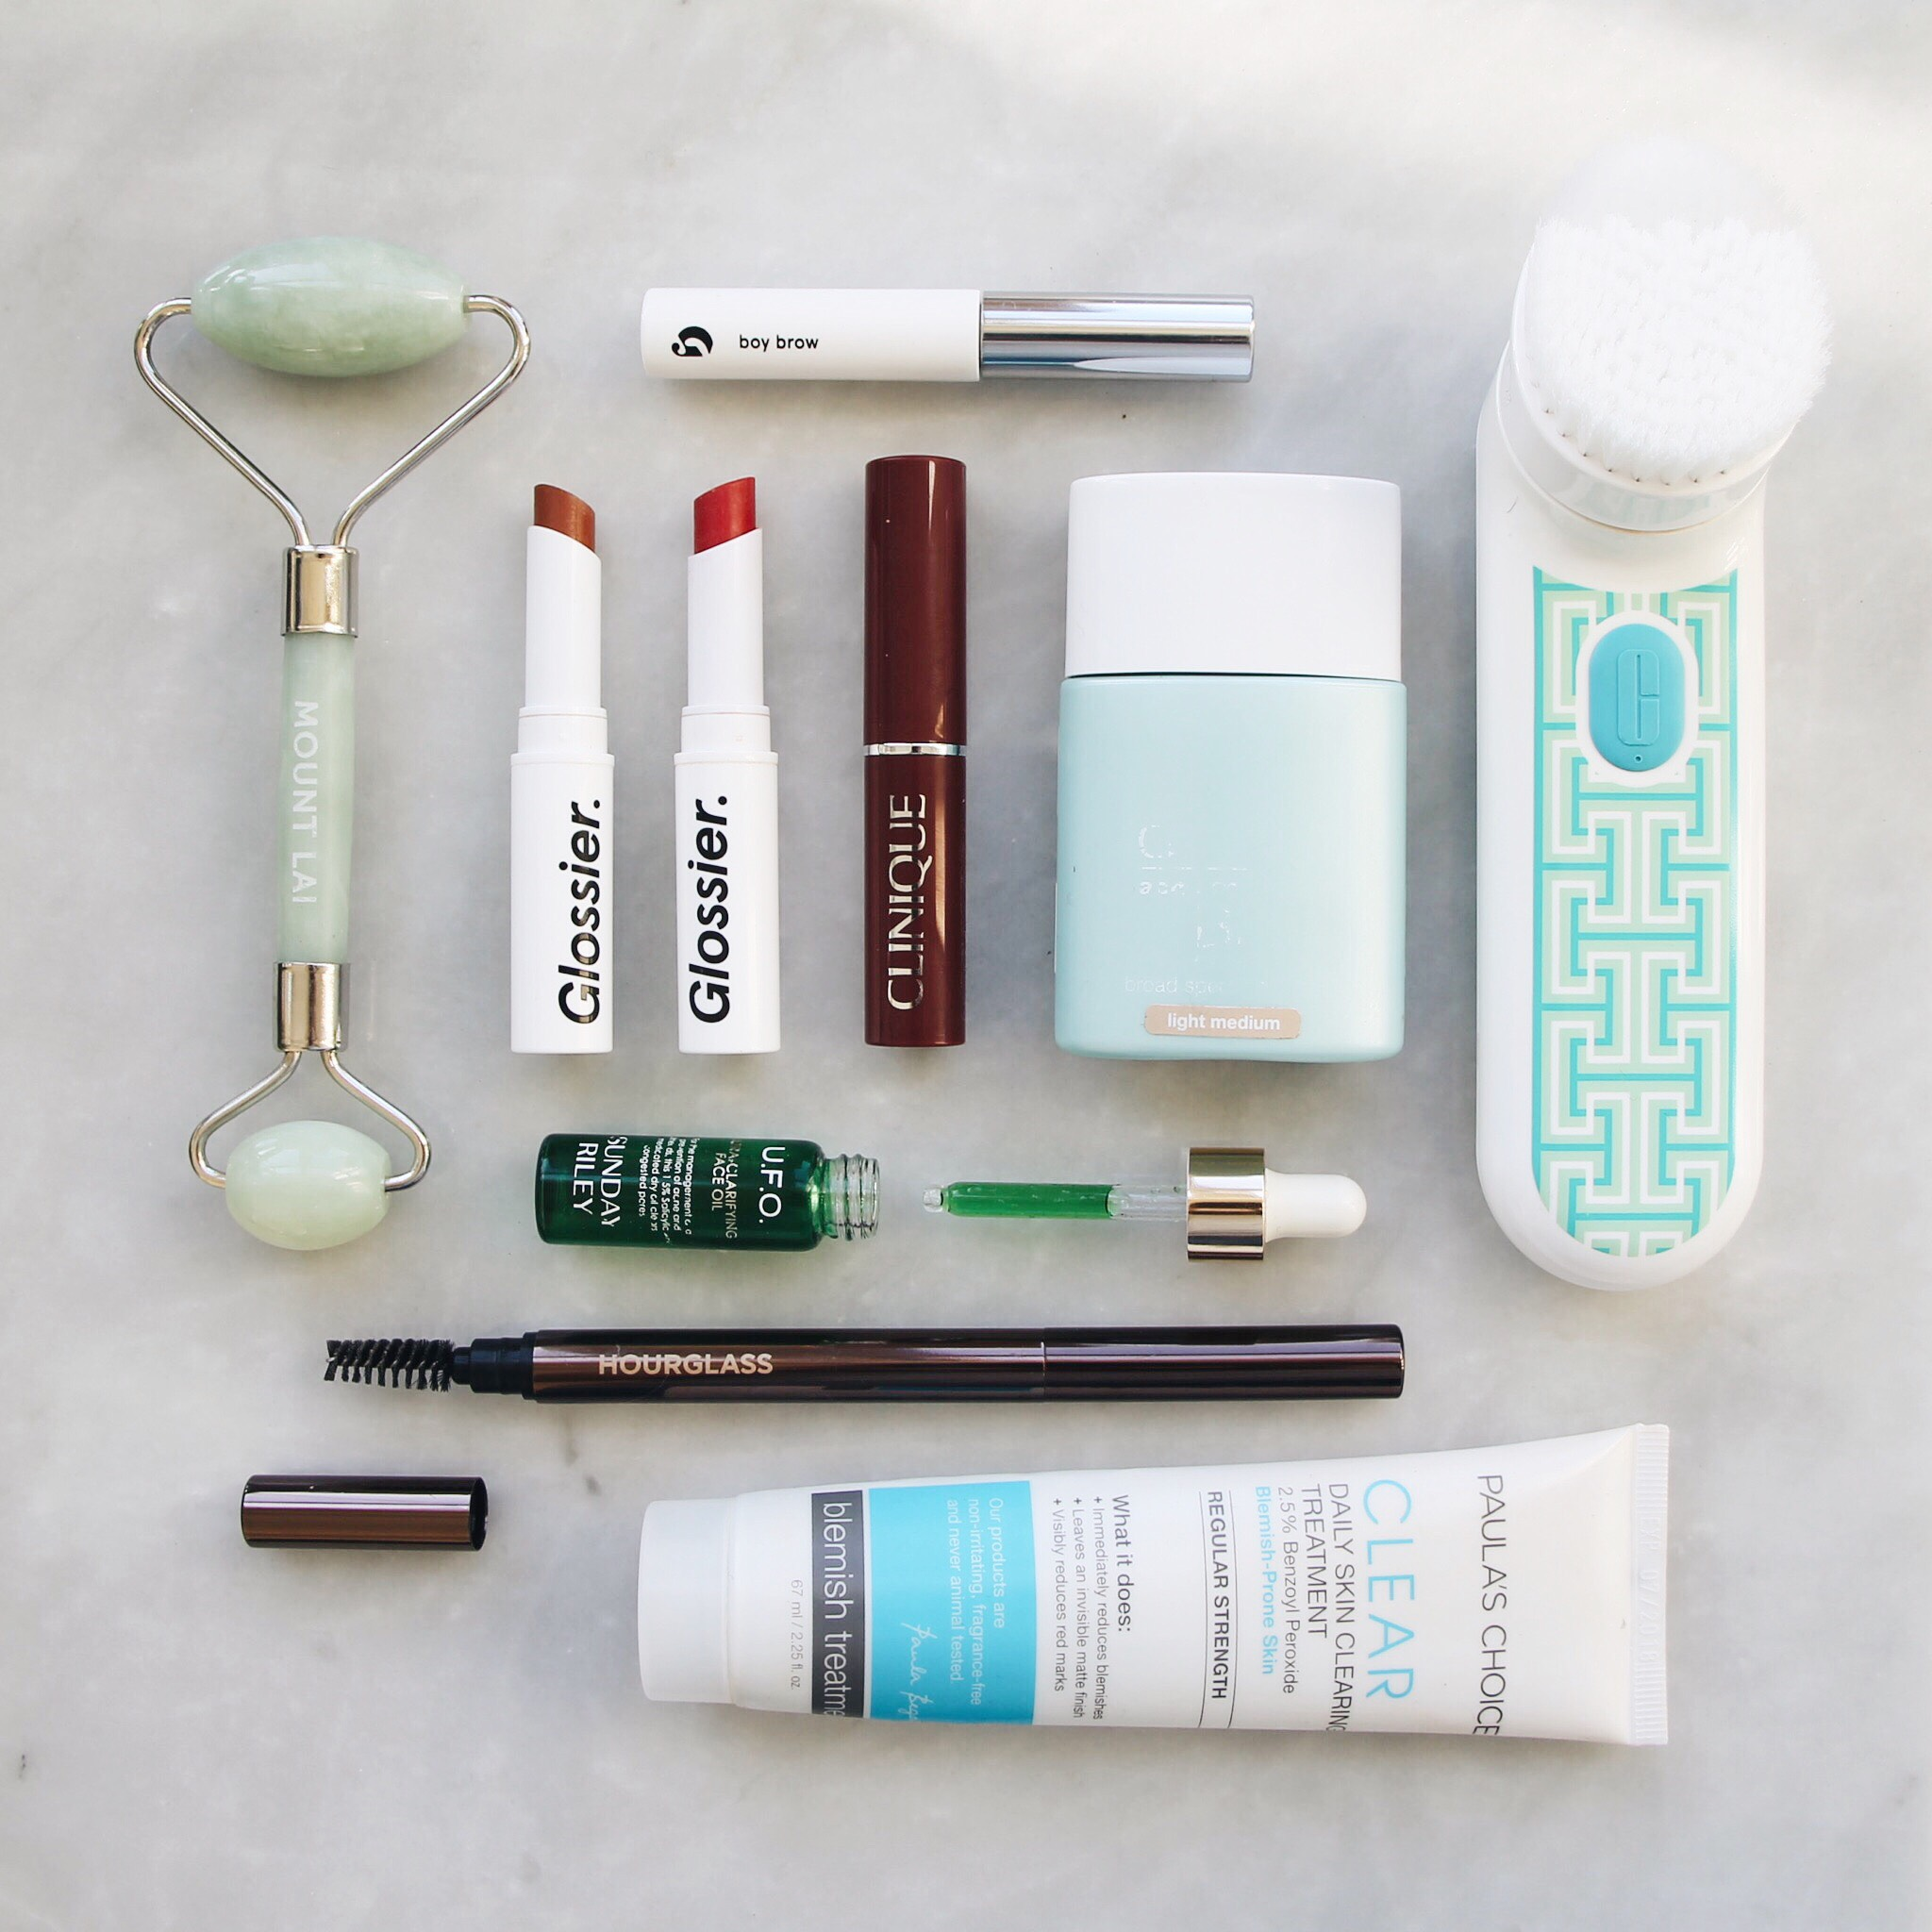 Top 10 Favorite Beauty Products of 2017, Glossier, Glossier Boy Brow, Glossier Generation G in Leo and Crush, Clinique Almost Lipstick Black Honey, Mount Lai, Jade Roller, The Jade Roller by Mount Lai, Sunday Riley UFO Oil, Clinique Acne Solutions BB Cream, Hourglass Eyebrow Pencil, Paula's Choice Acne Treatment, Clinique Sonic Cleansing Brush, Clinique x Jonathan Adler